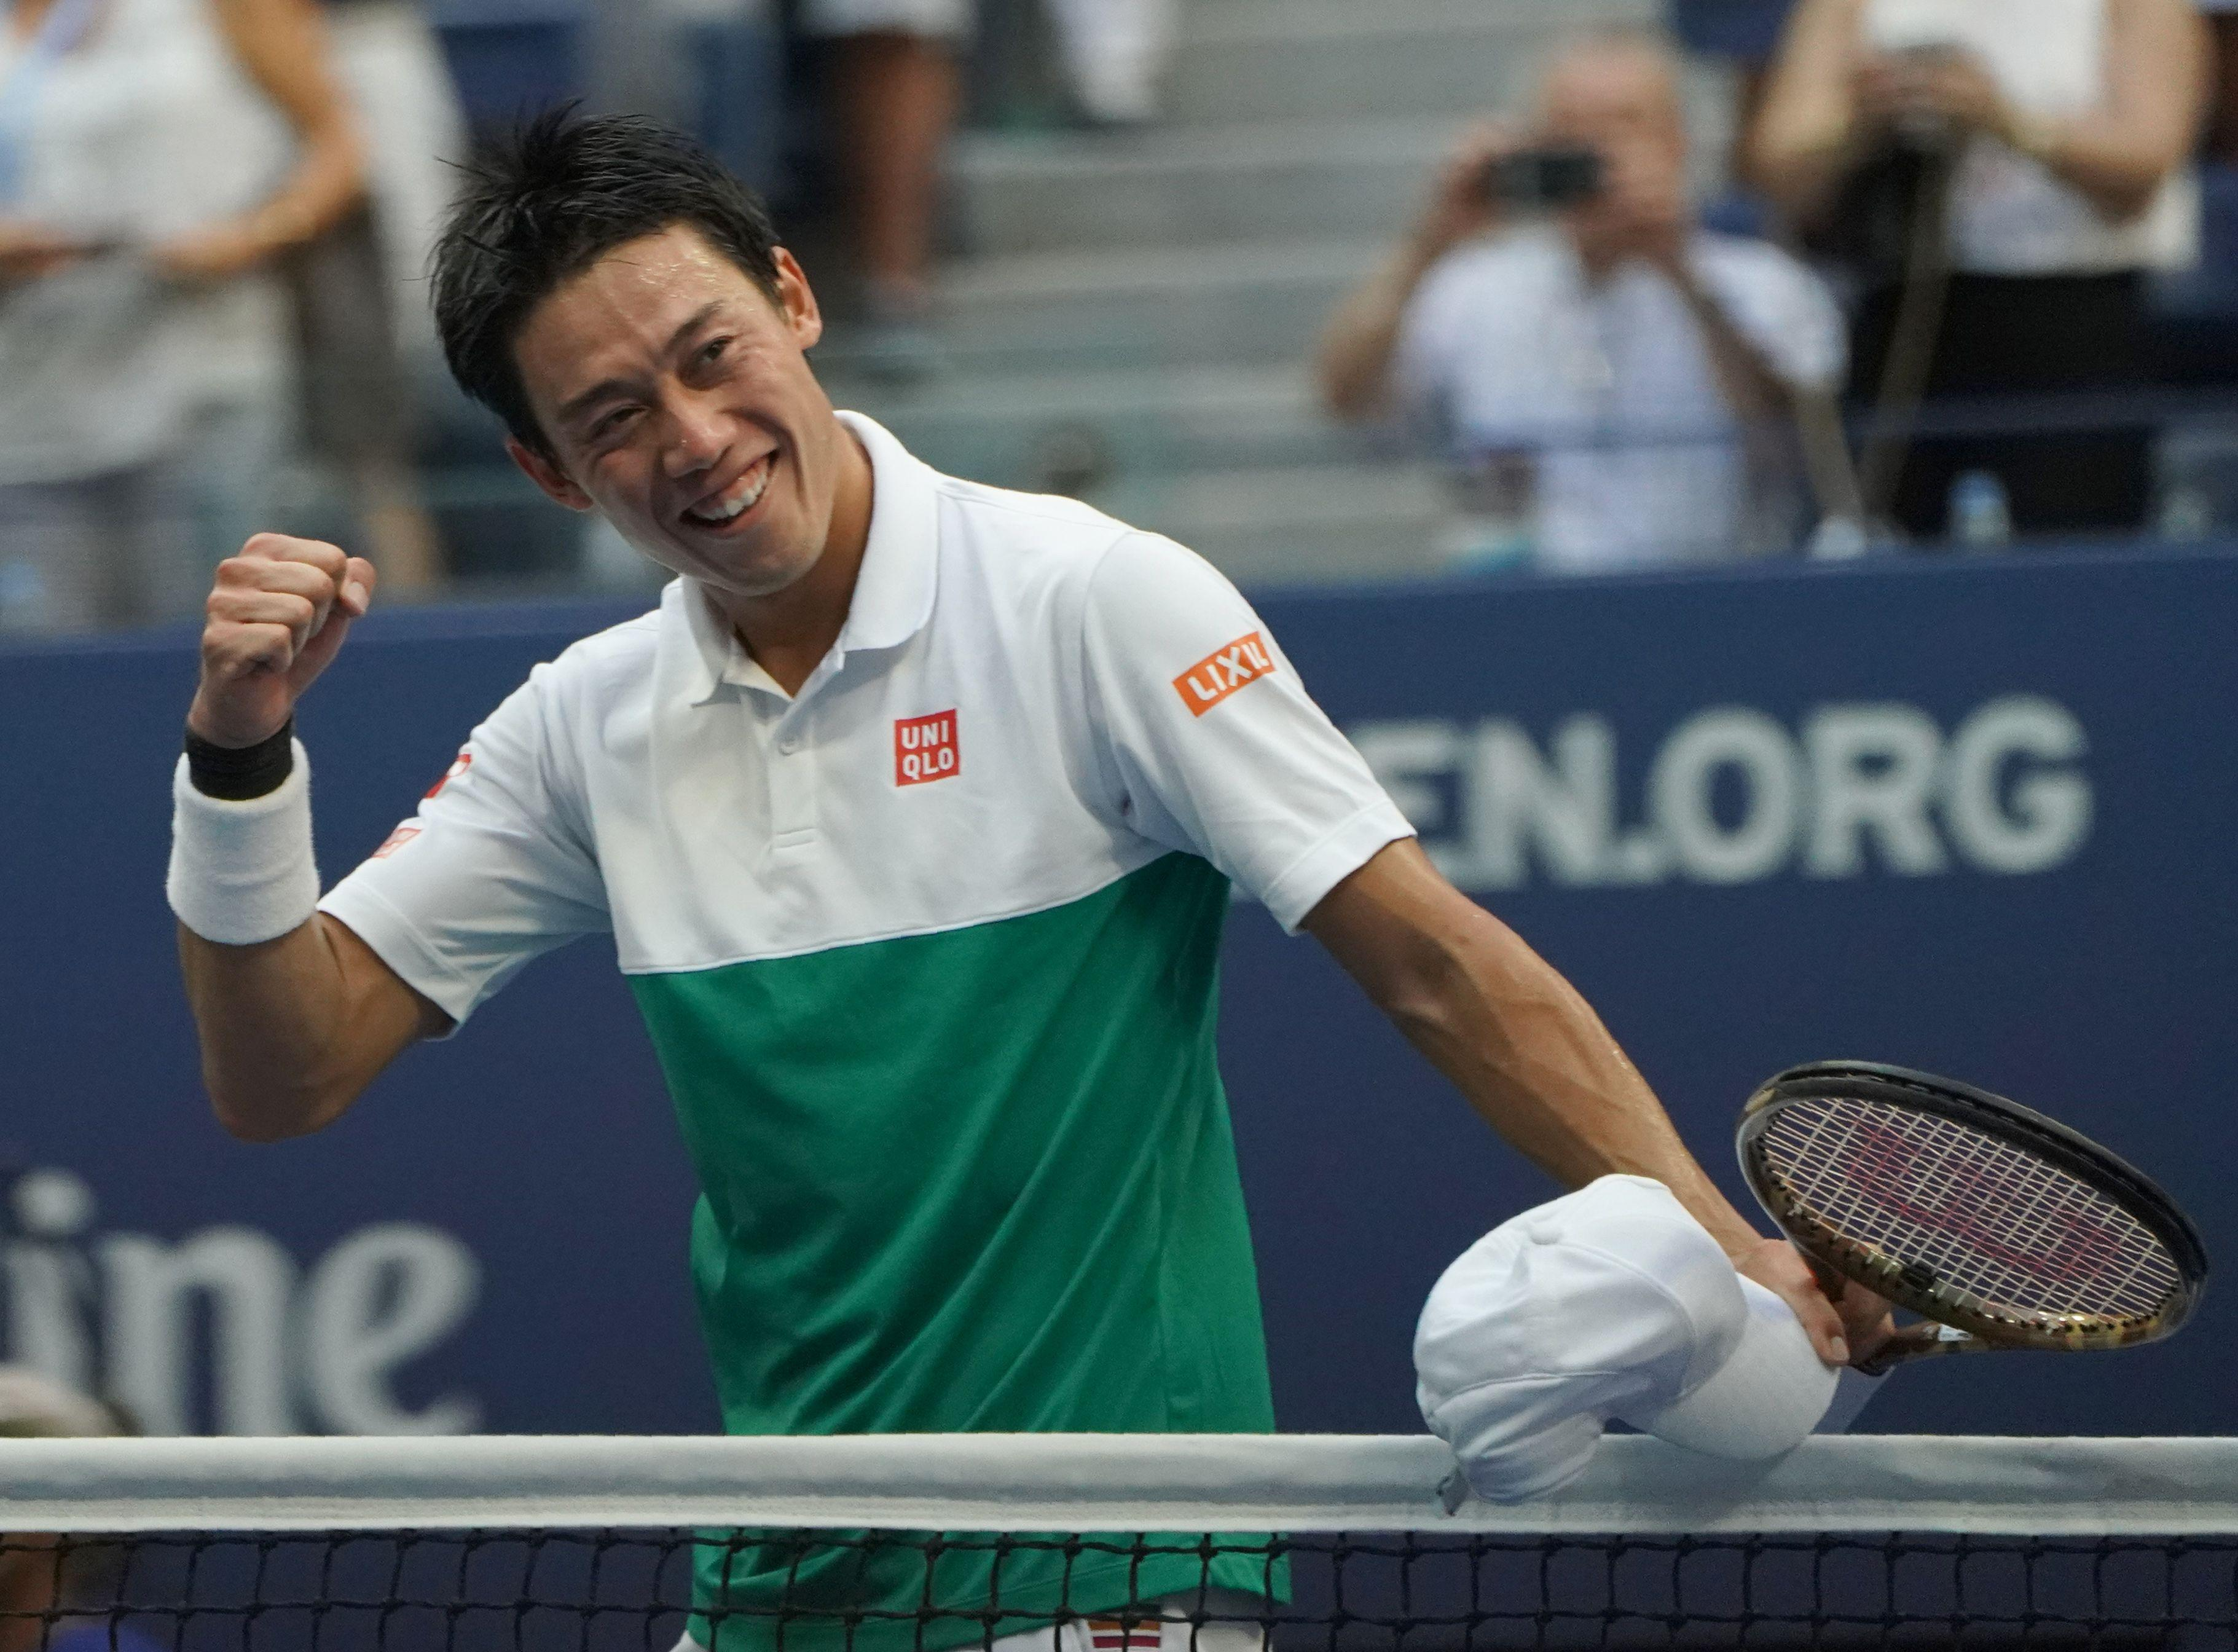 Kei Nishikori would become the first Japanese Grand Slam winner if he lifts the title at Flushing Meadows